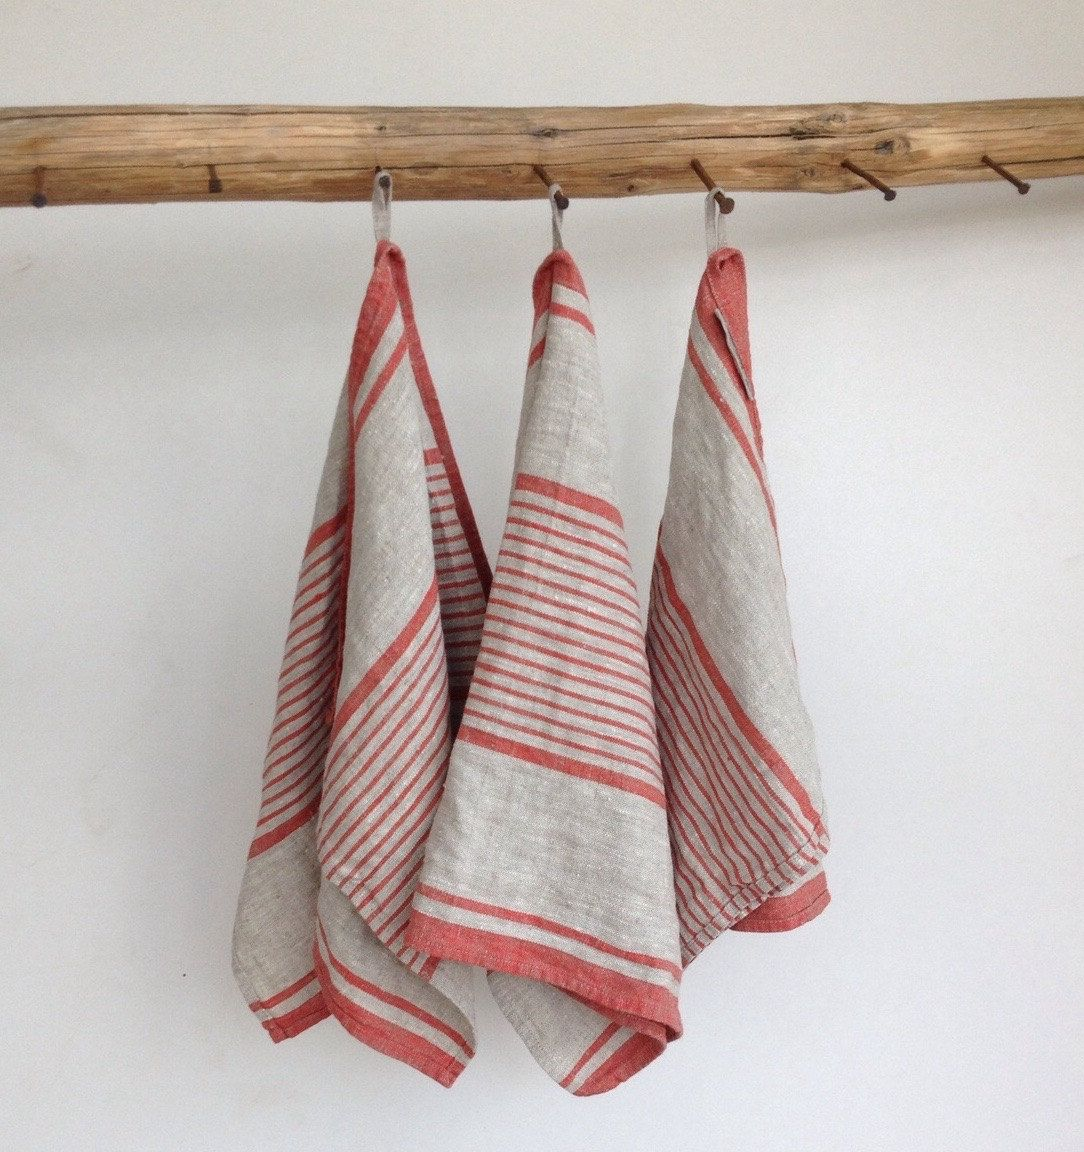 Rustic Linen Tea Towels Set Of Three French Country Ticking Inspired Dish Towels Kitchen Towels Striped Linen Linen Tea Towel Rustic Linen Kitchen Towel Set